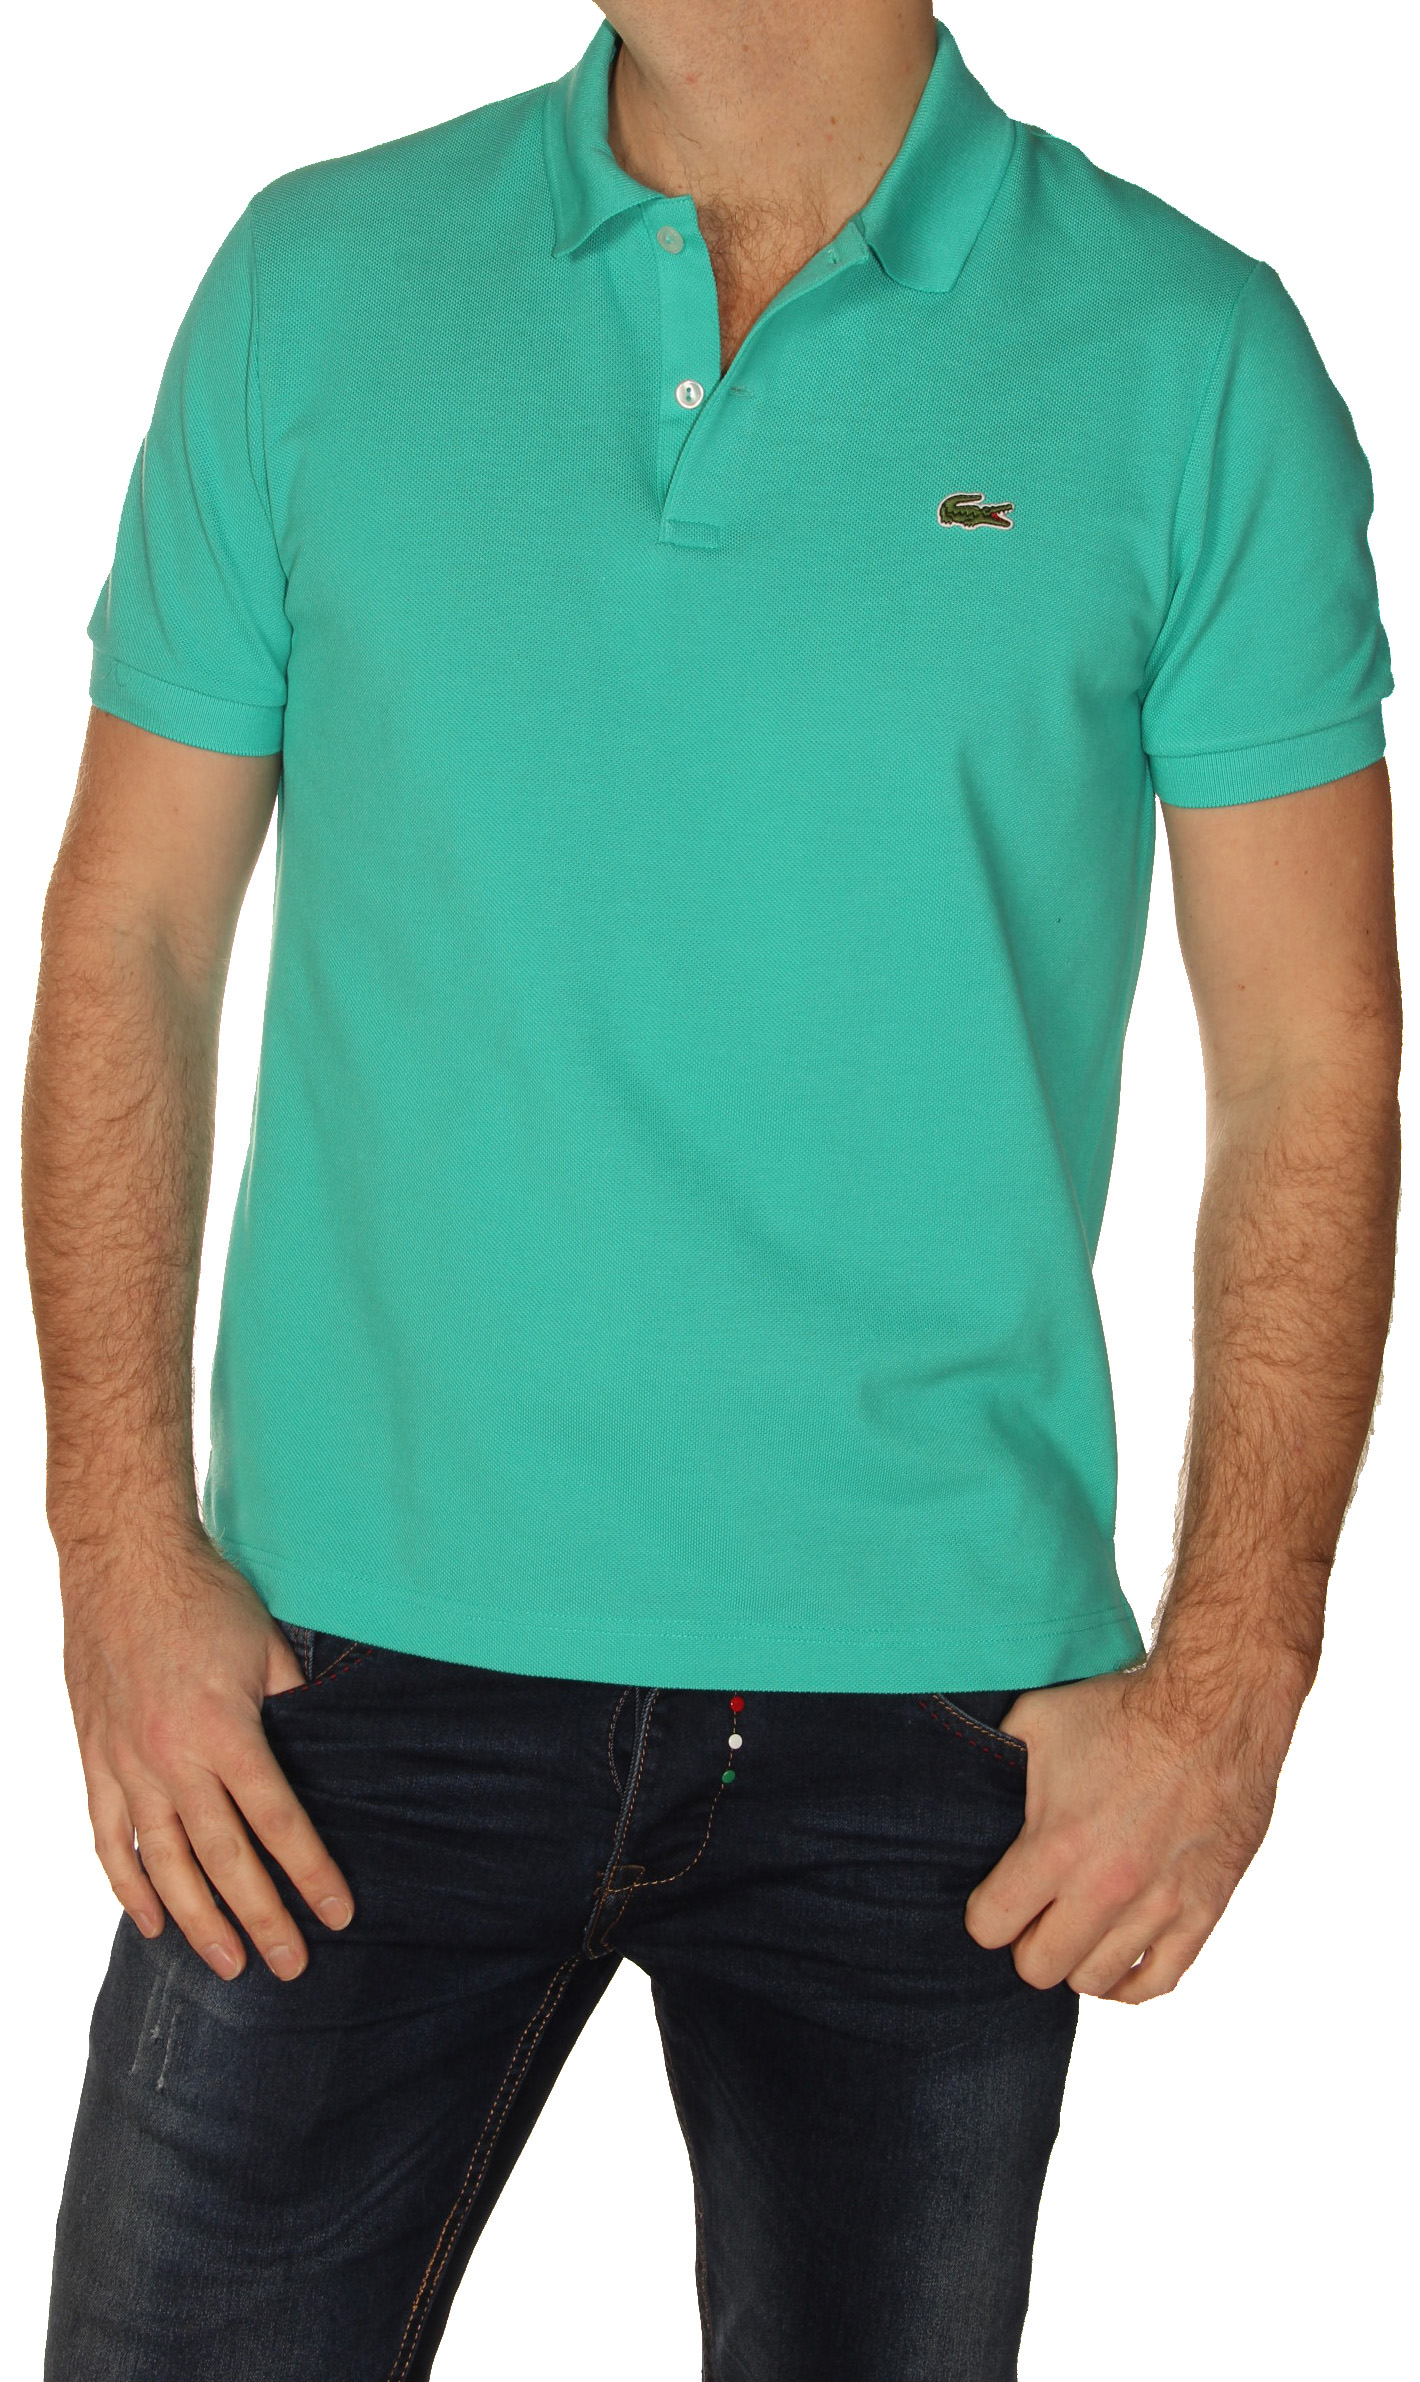 upload/product_display_image/201302/lacoste_ph2403_amazonite_a.jpg